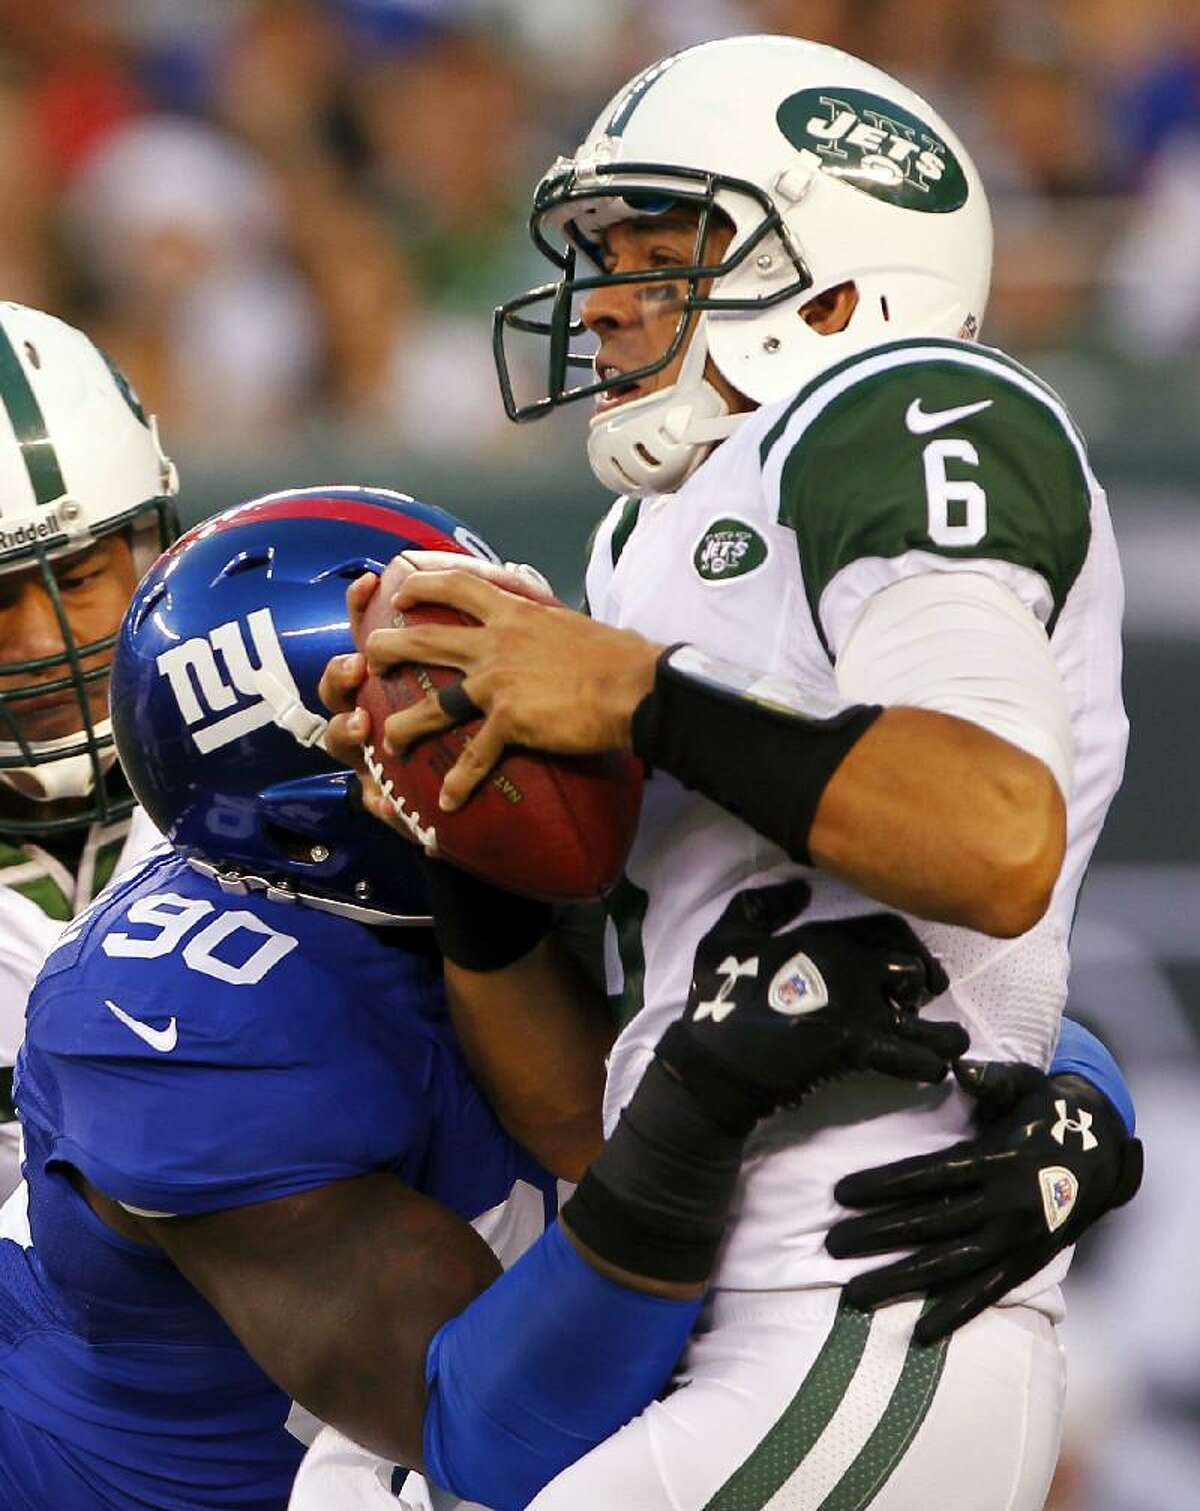 ASSOCIATED PRESS New York Giants defensive end Jason Pierre-Paul (90) sacks New York Jets quarterback Mark Sanchez (6) during the first half of a preseason game on Saturday in East Rutherford, N.J. The Giants won 26-3.